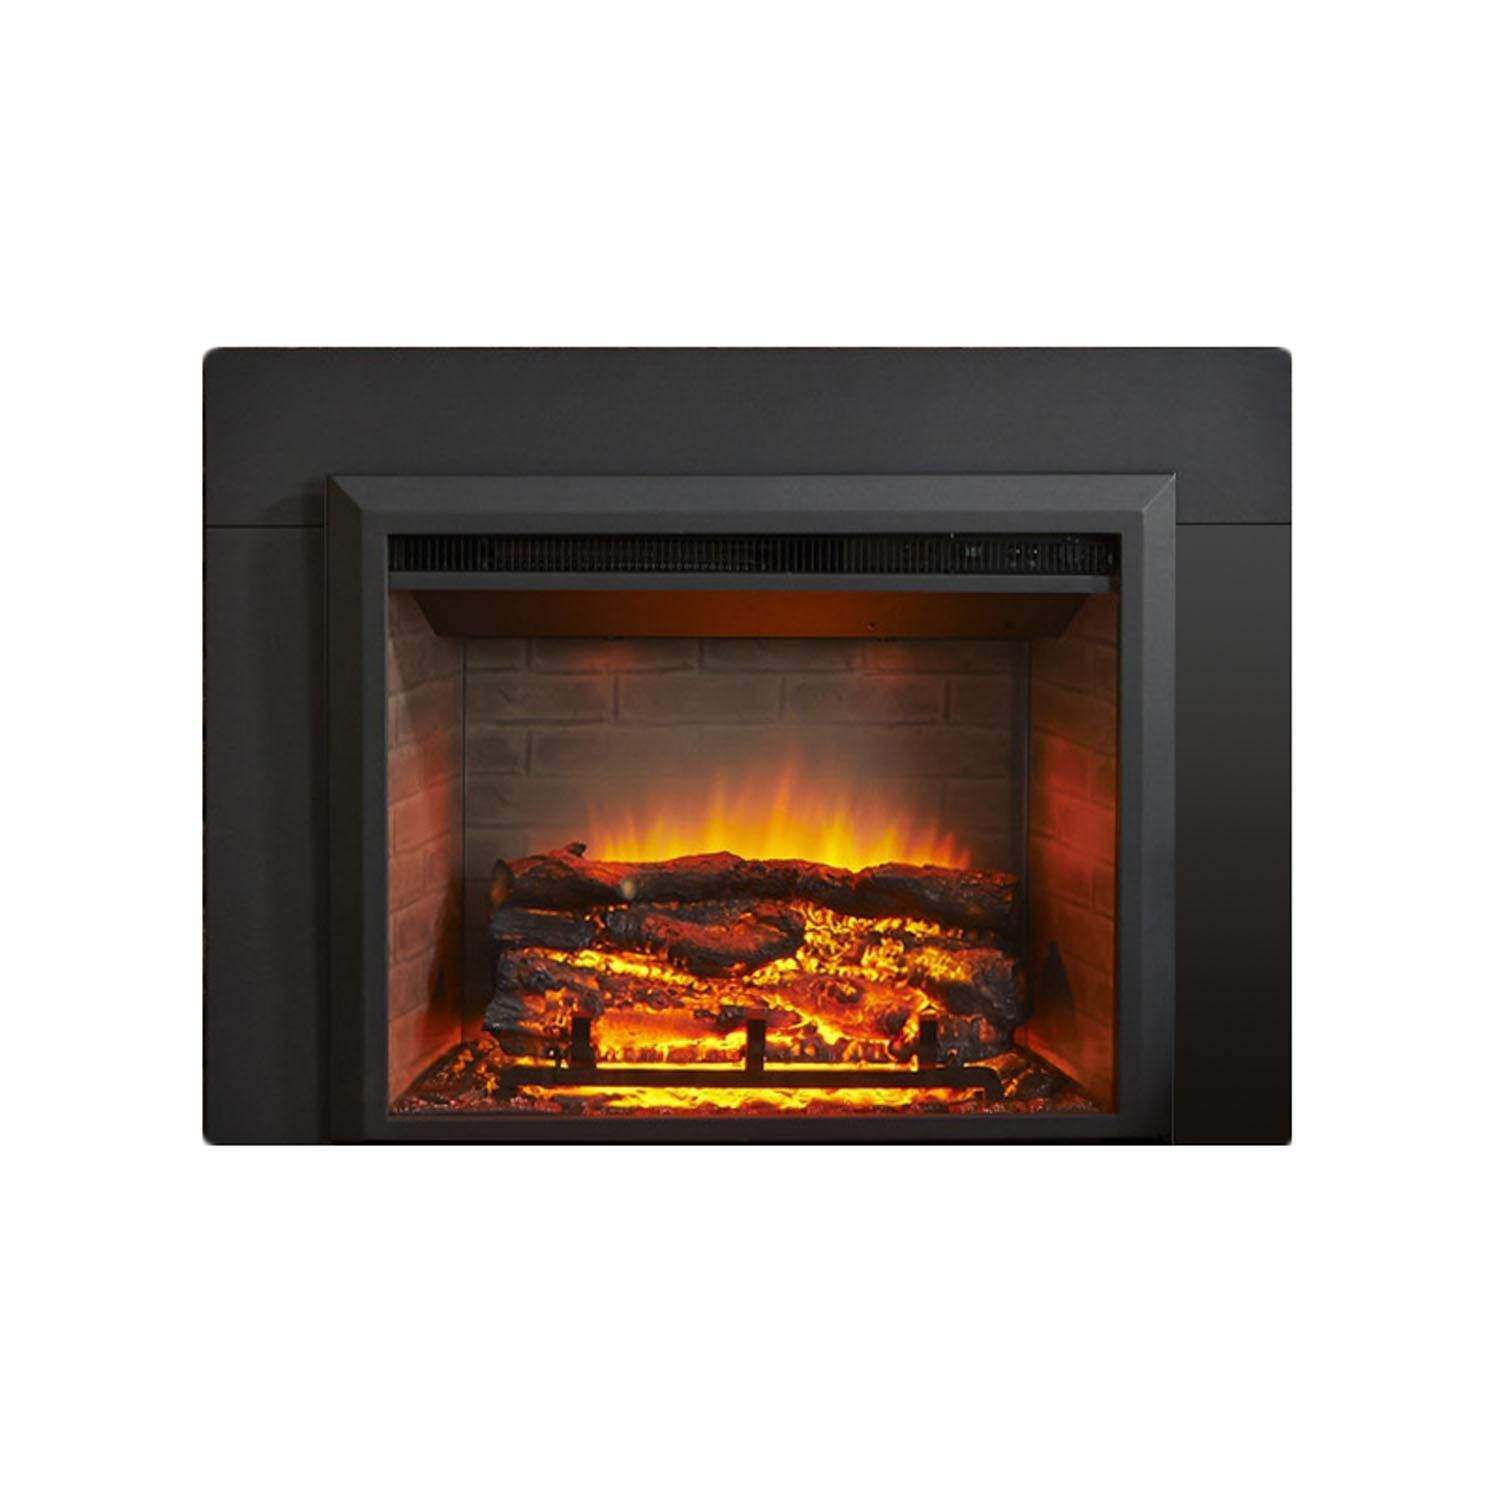 Greatco Gallery Series Insert Electric Fireplace 36 Inch